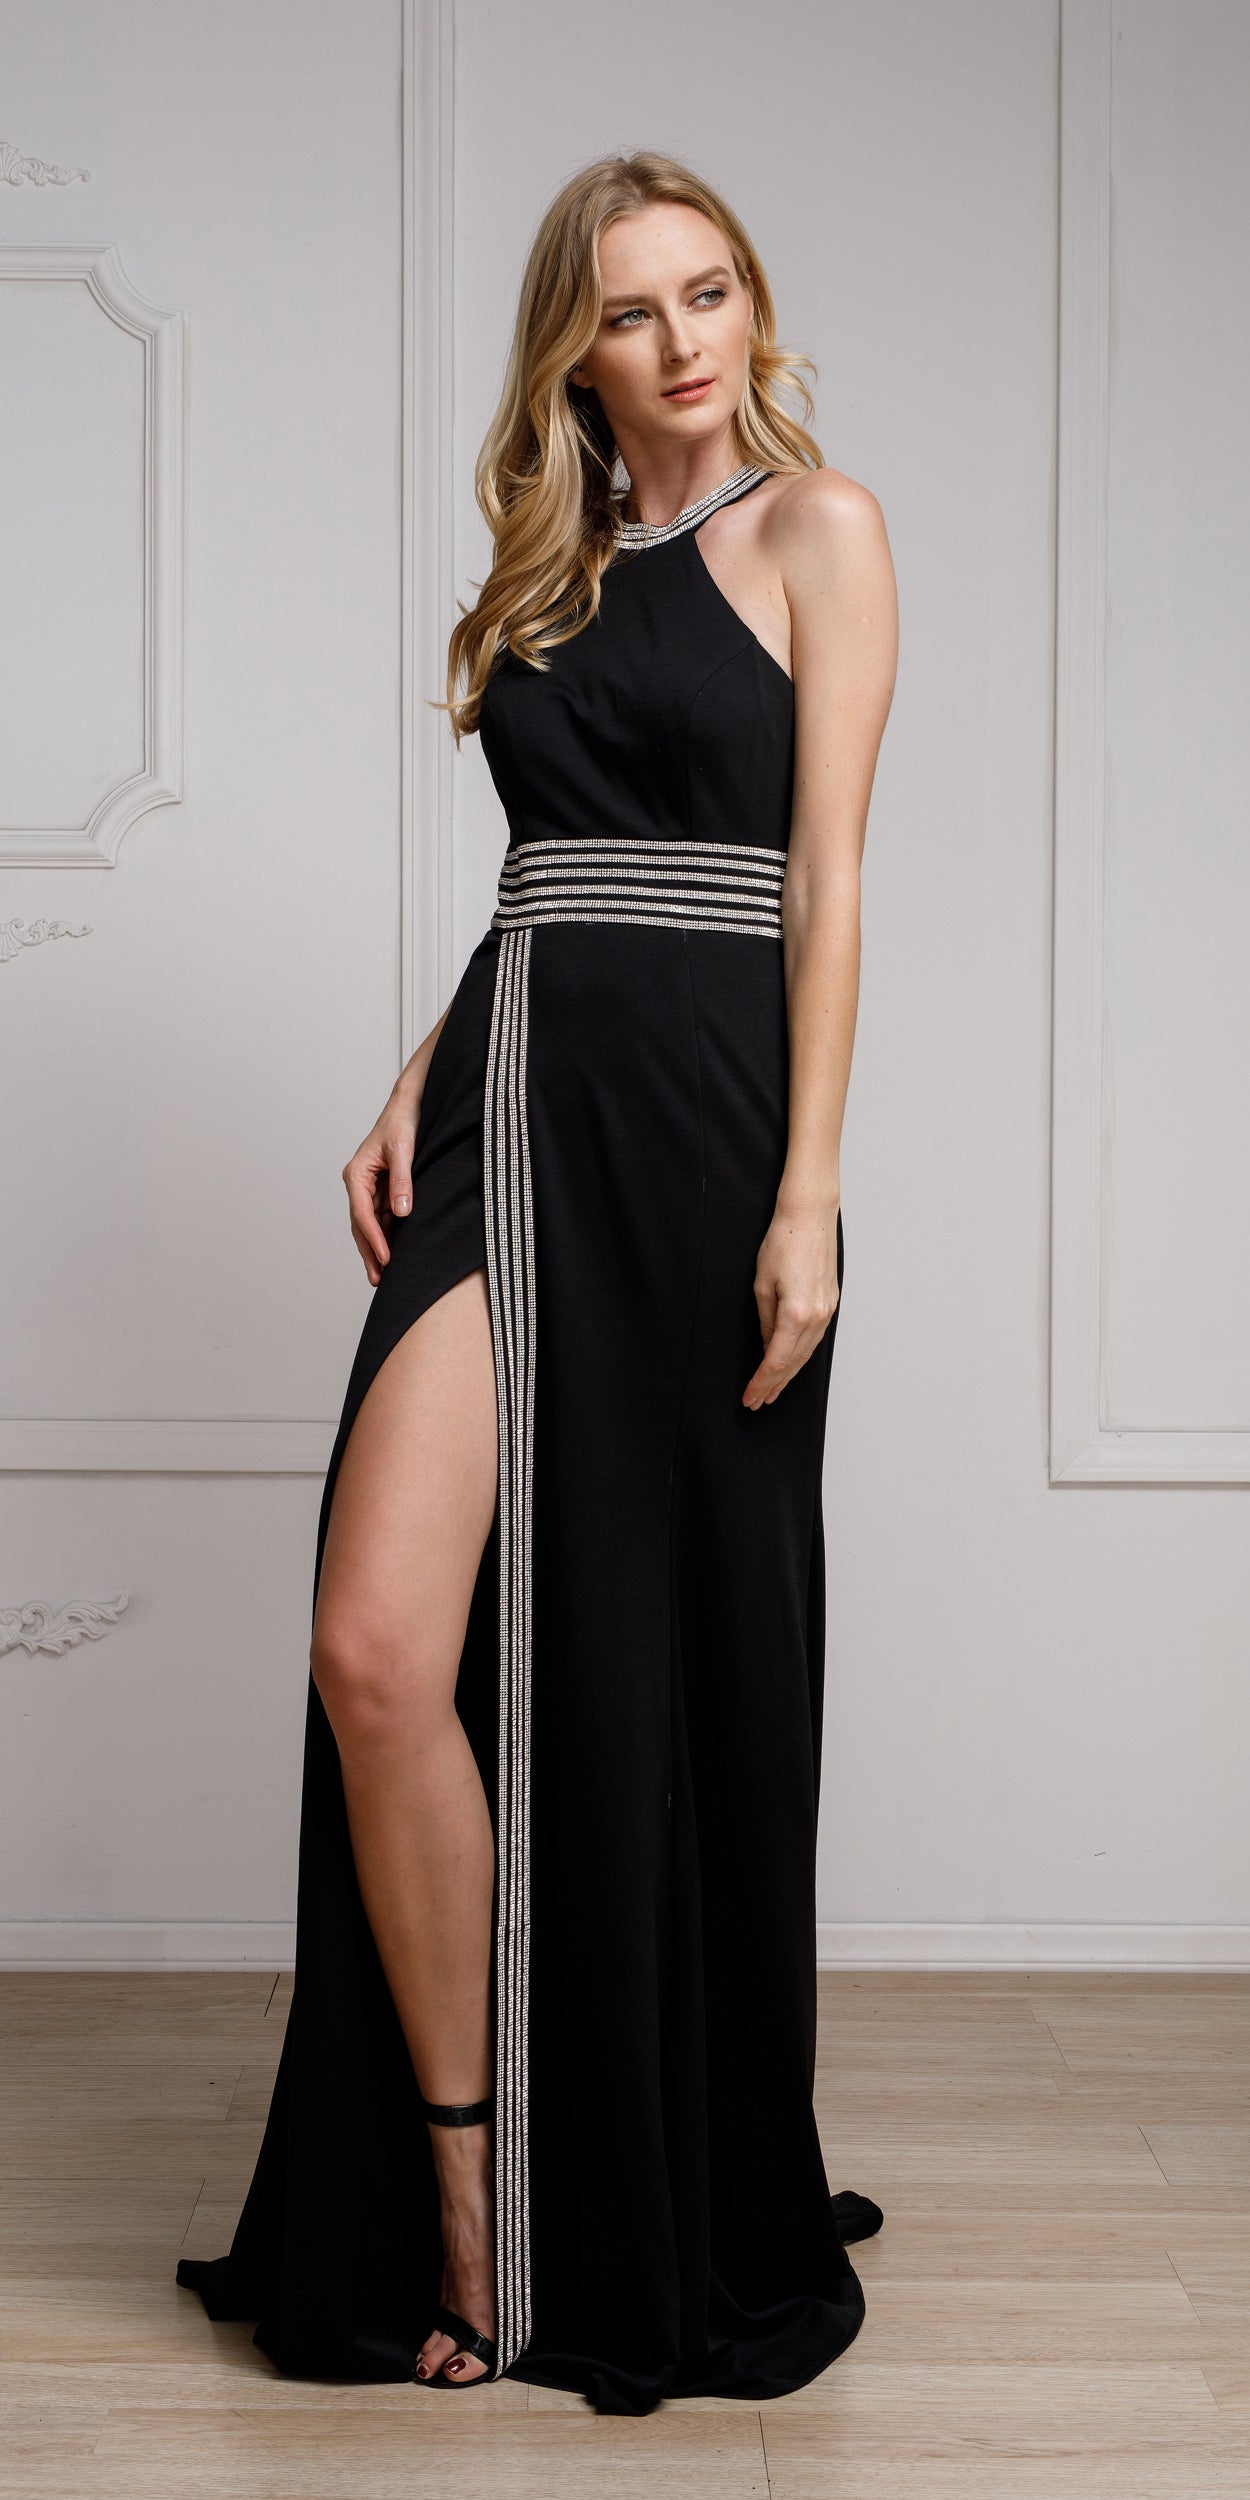 Main image of Halter Neck Formal Prom Gown With Front Slit